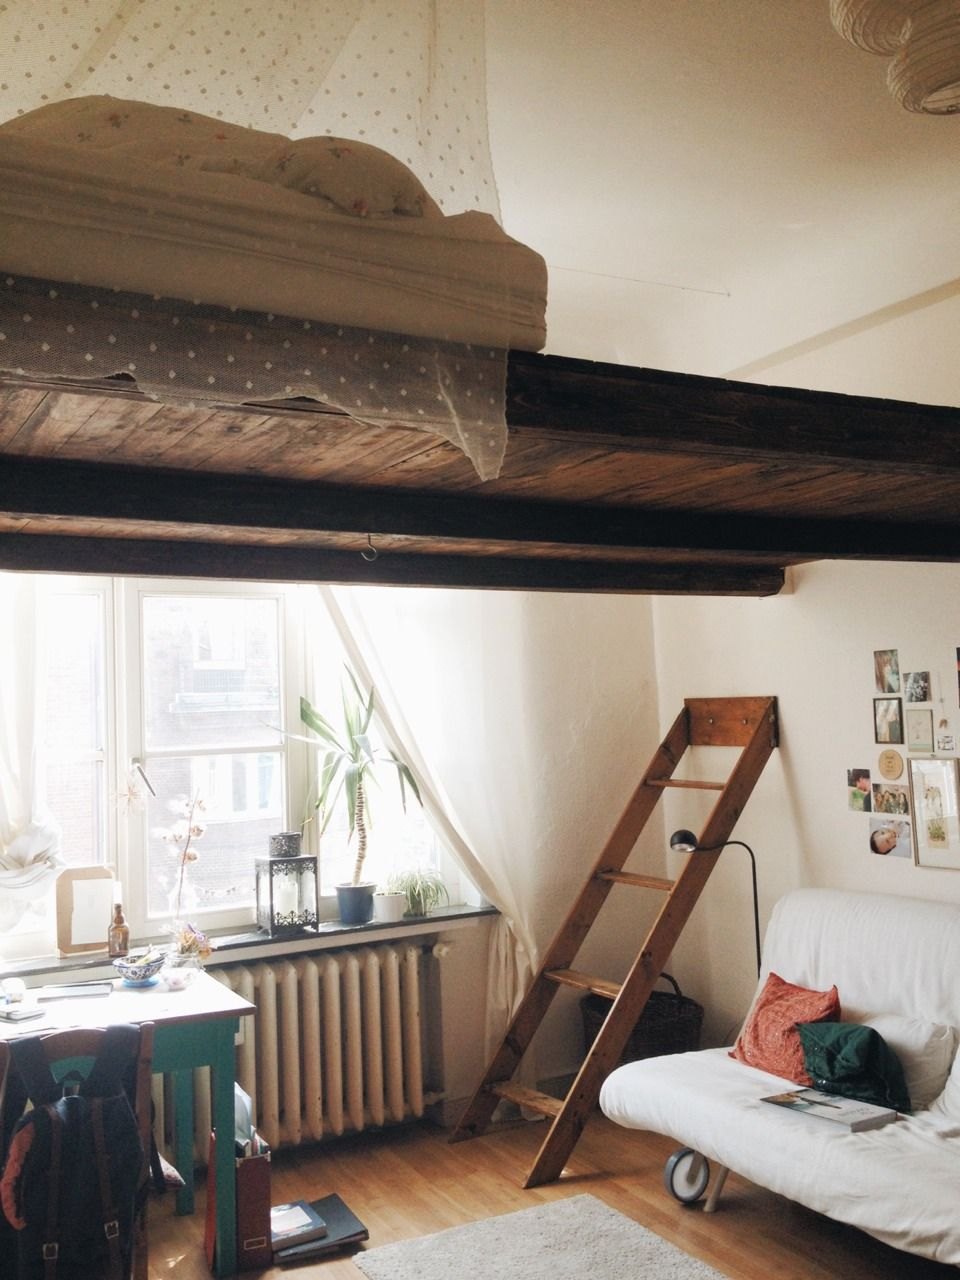 Brilliant idea for a studio apartment maybe with hooks along the